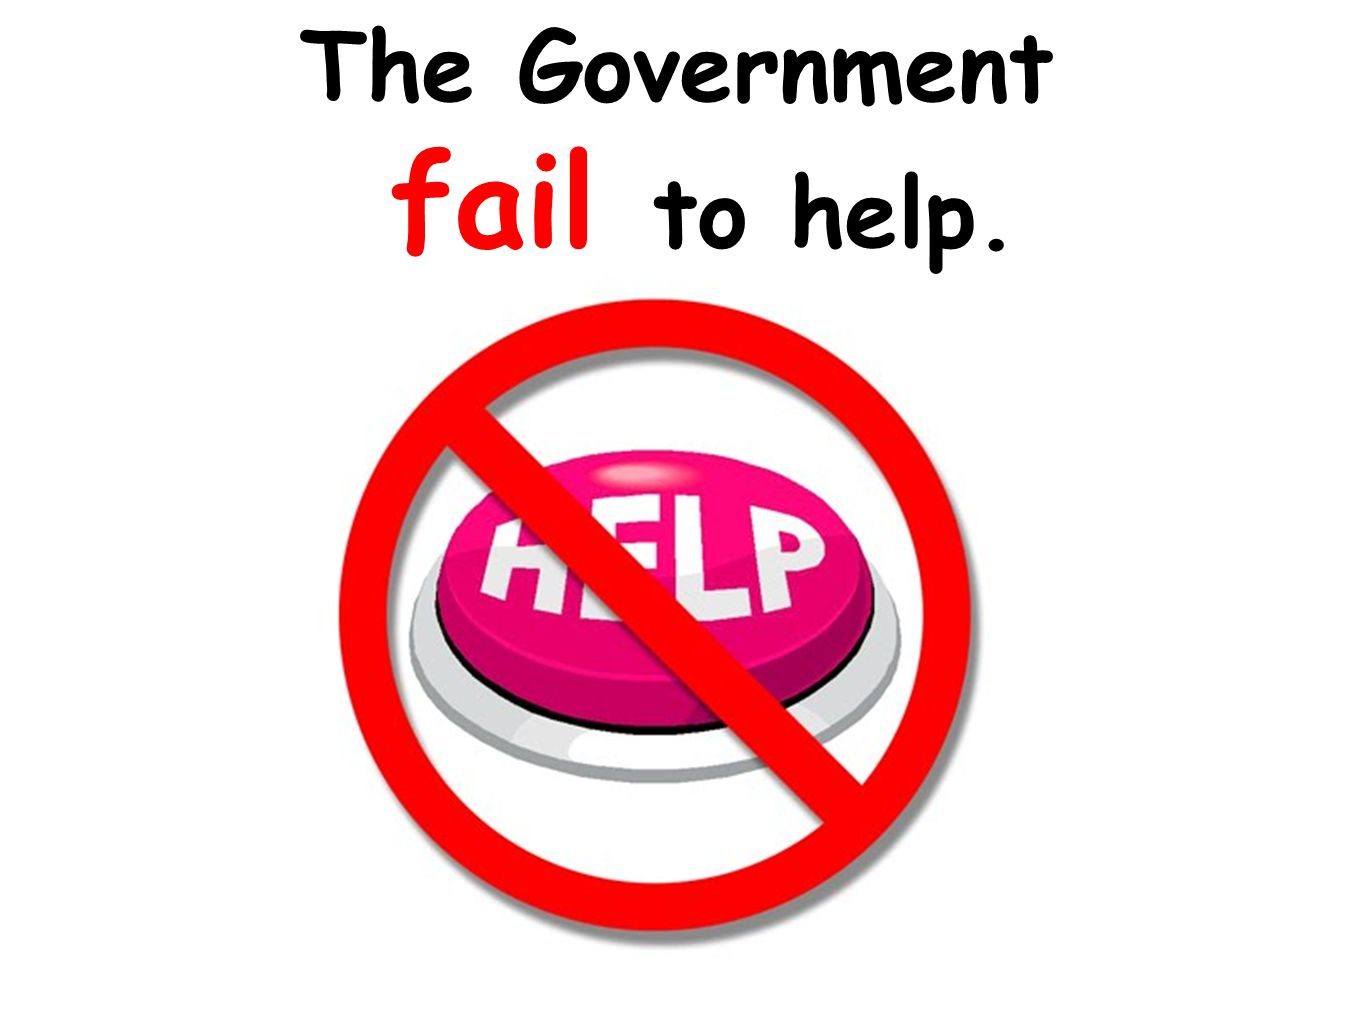 The Government fail to help.